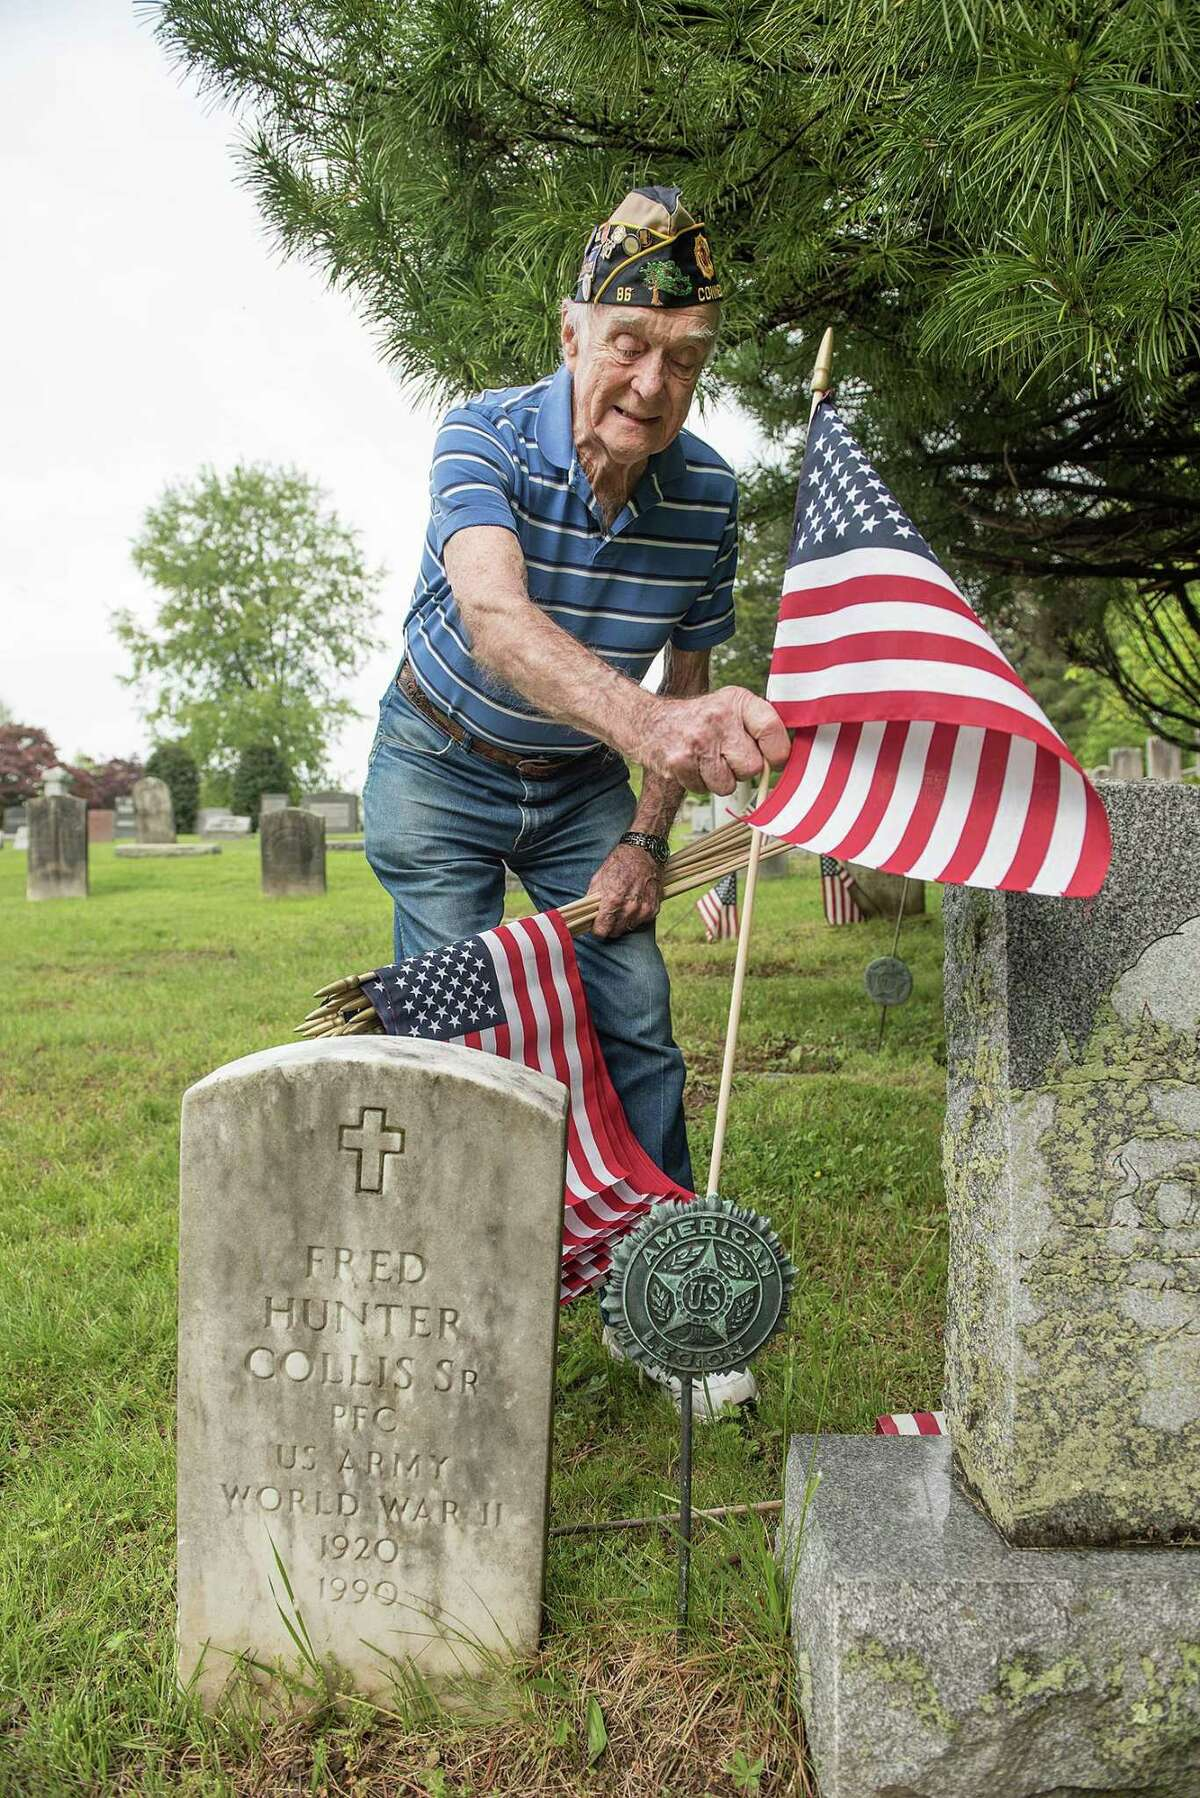 Air Force veteran Bing Ventres places a flag at the grave of Fred Hunter Collis Sr., at Hillside Cemetery in Wilton on May 20, 2019.